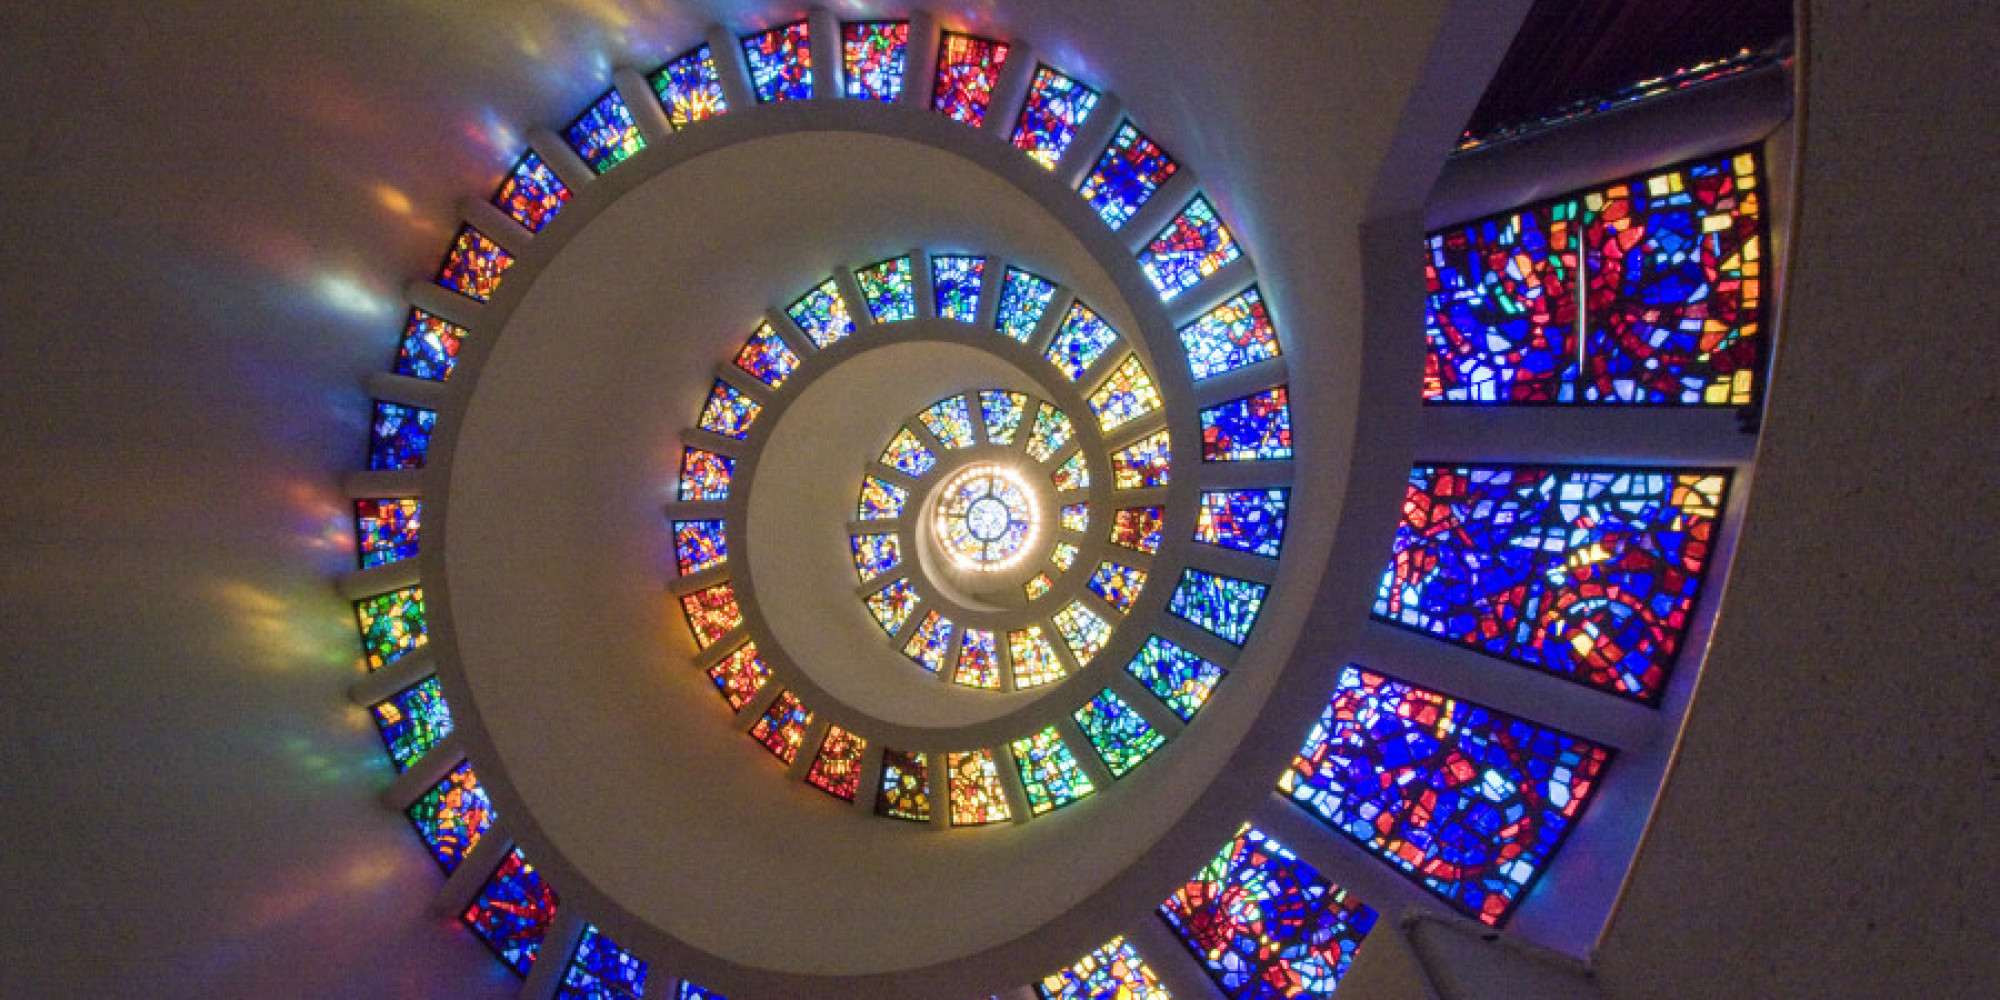 Stained Glass Windows : The most stunning stained glass windows in world